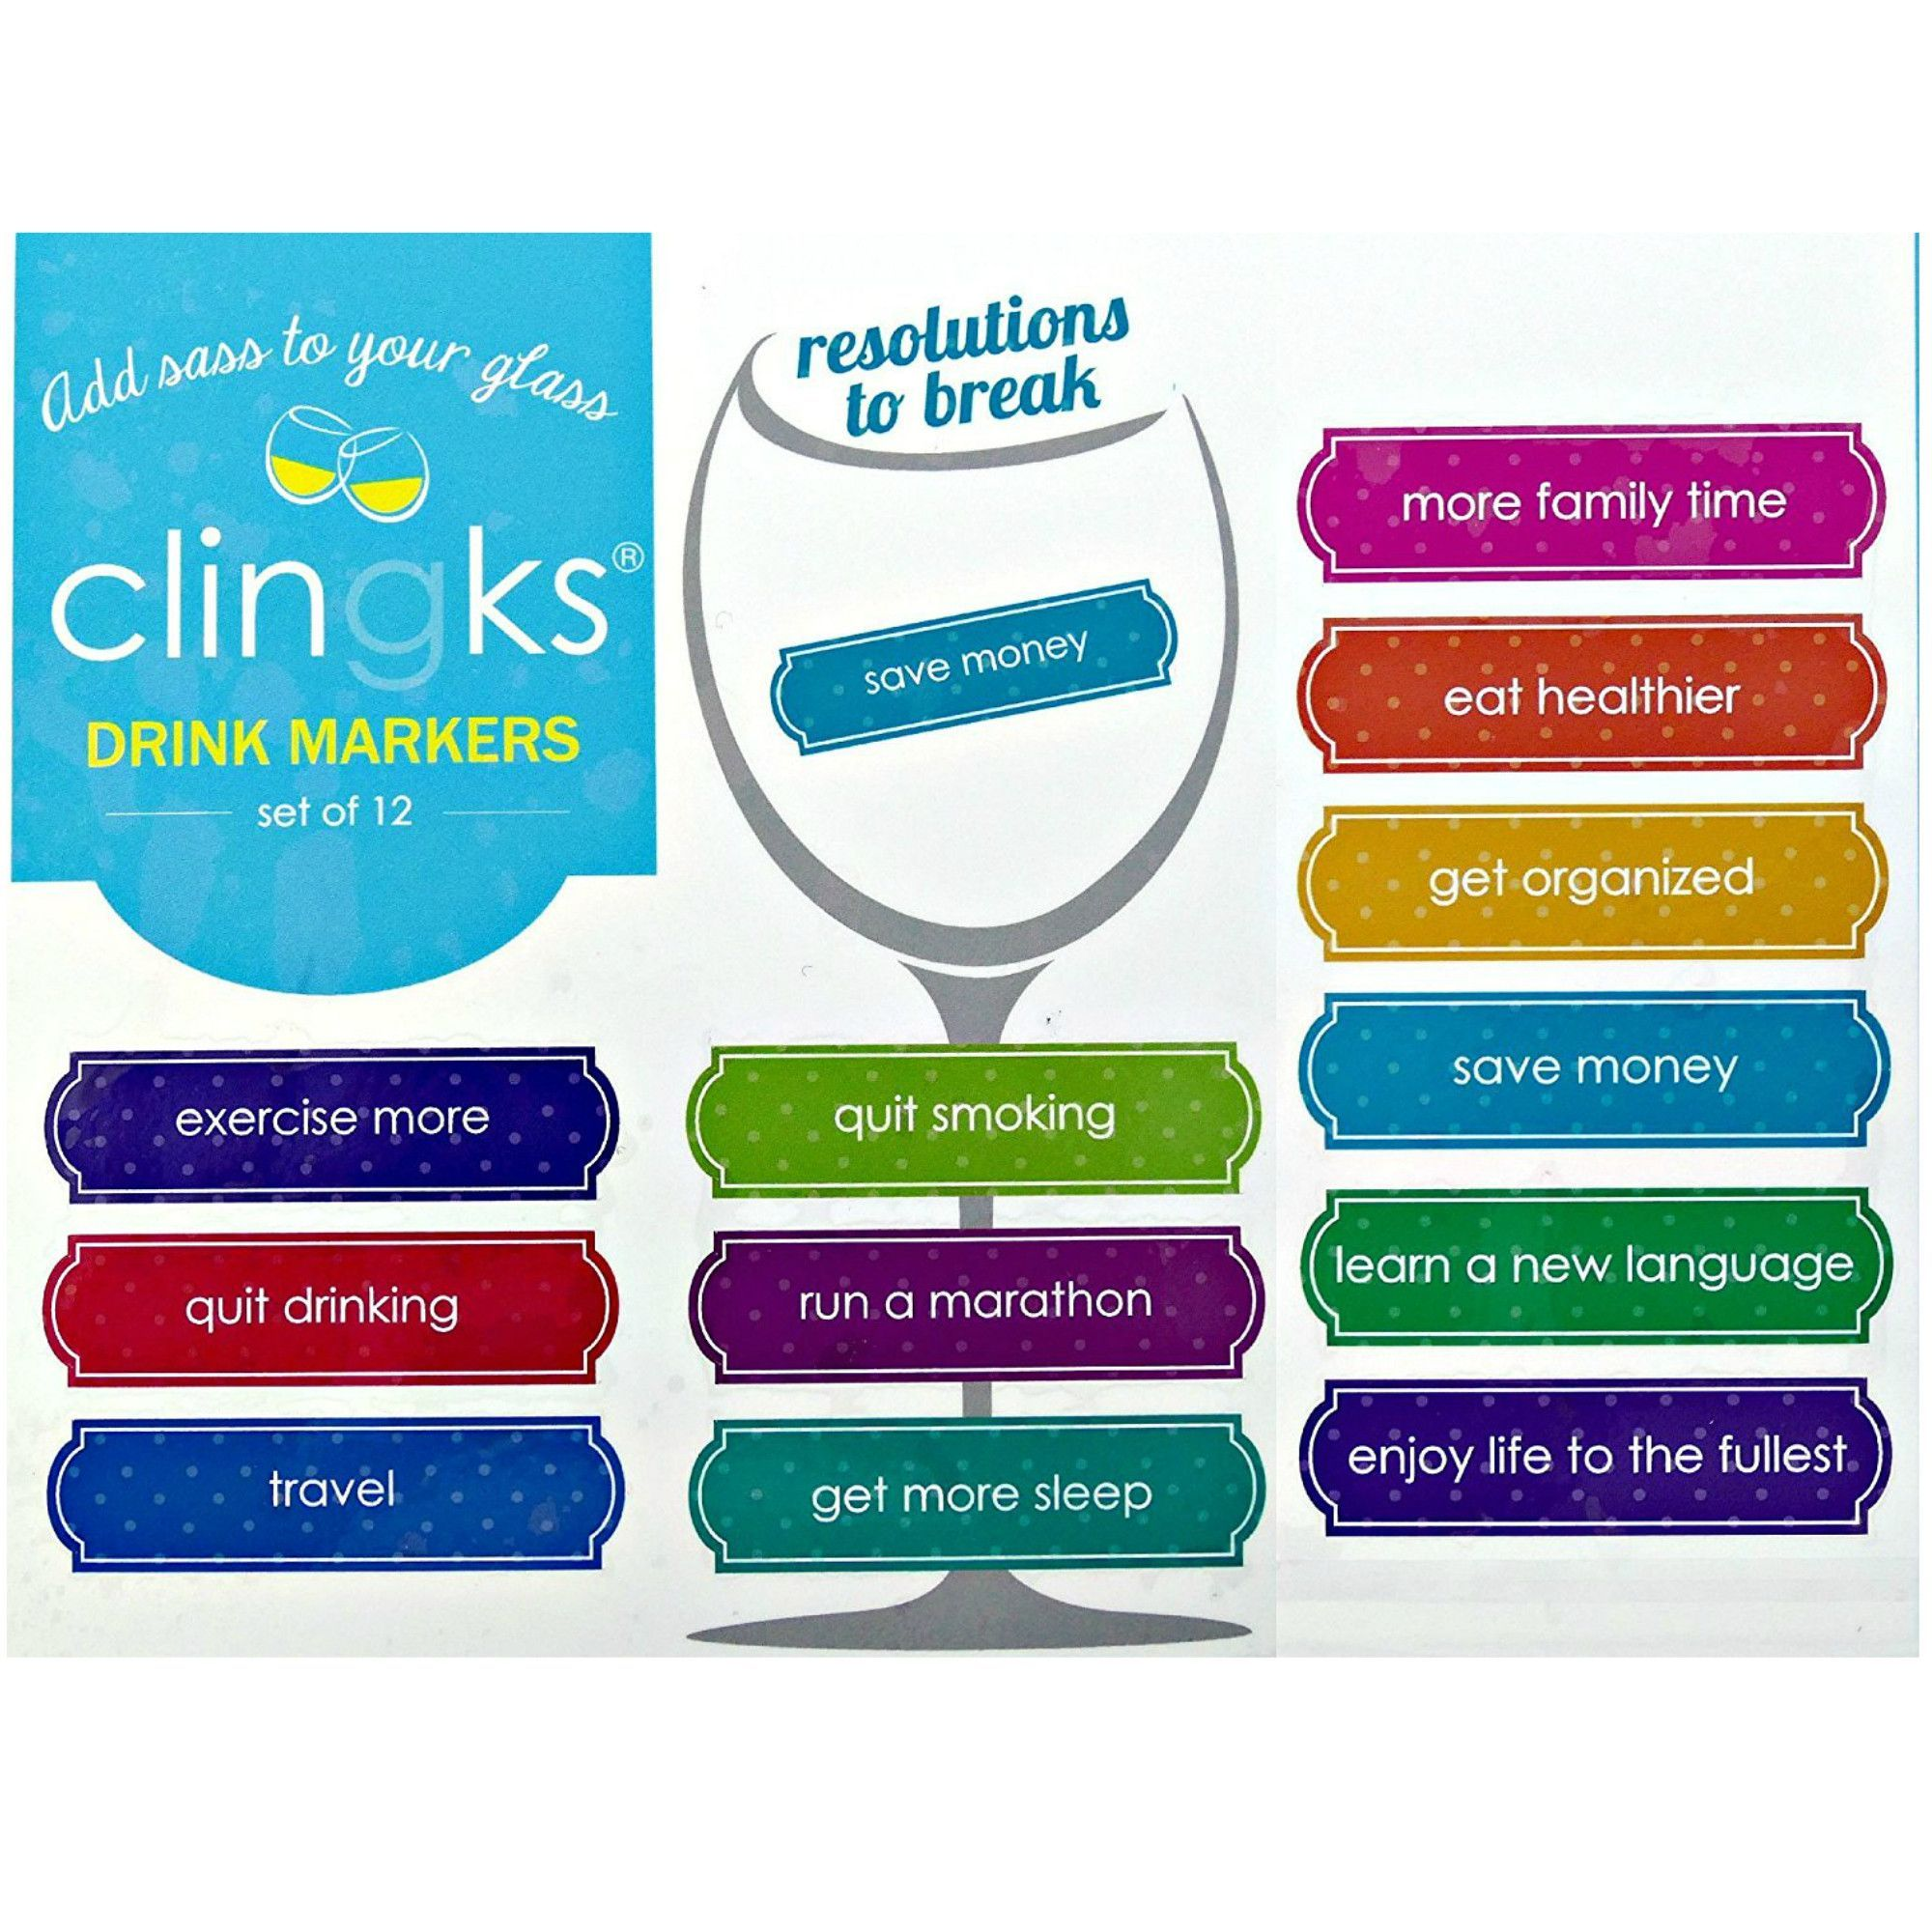 Clingks 12 Drink Markers - Resolutions To Break